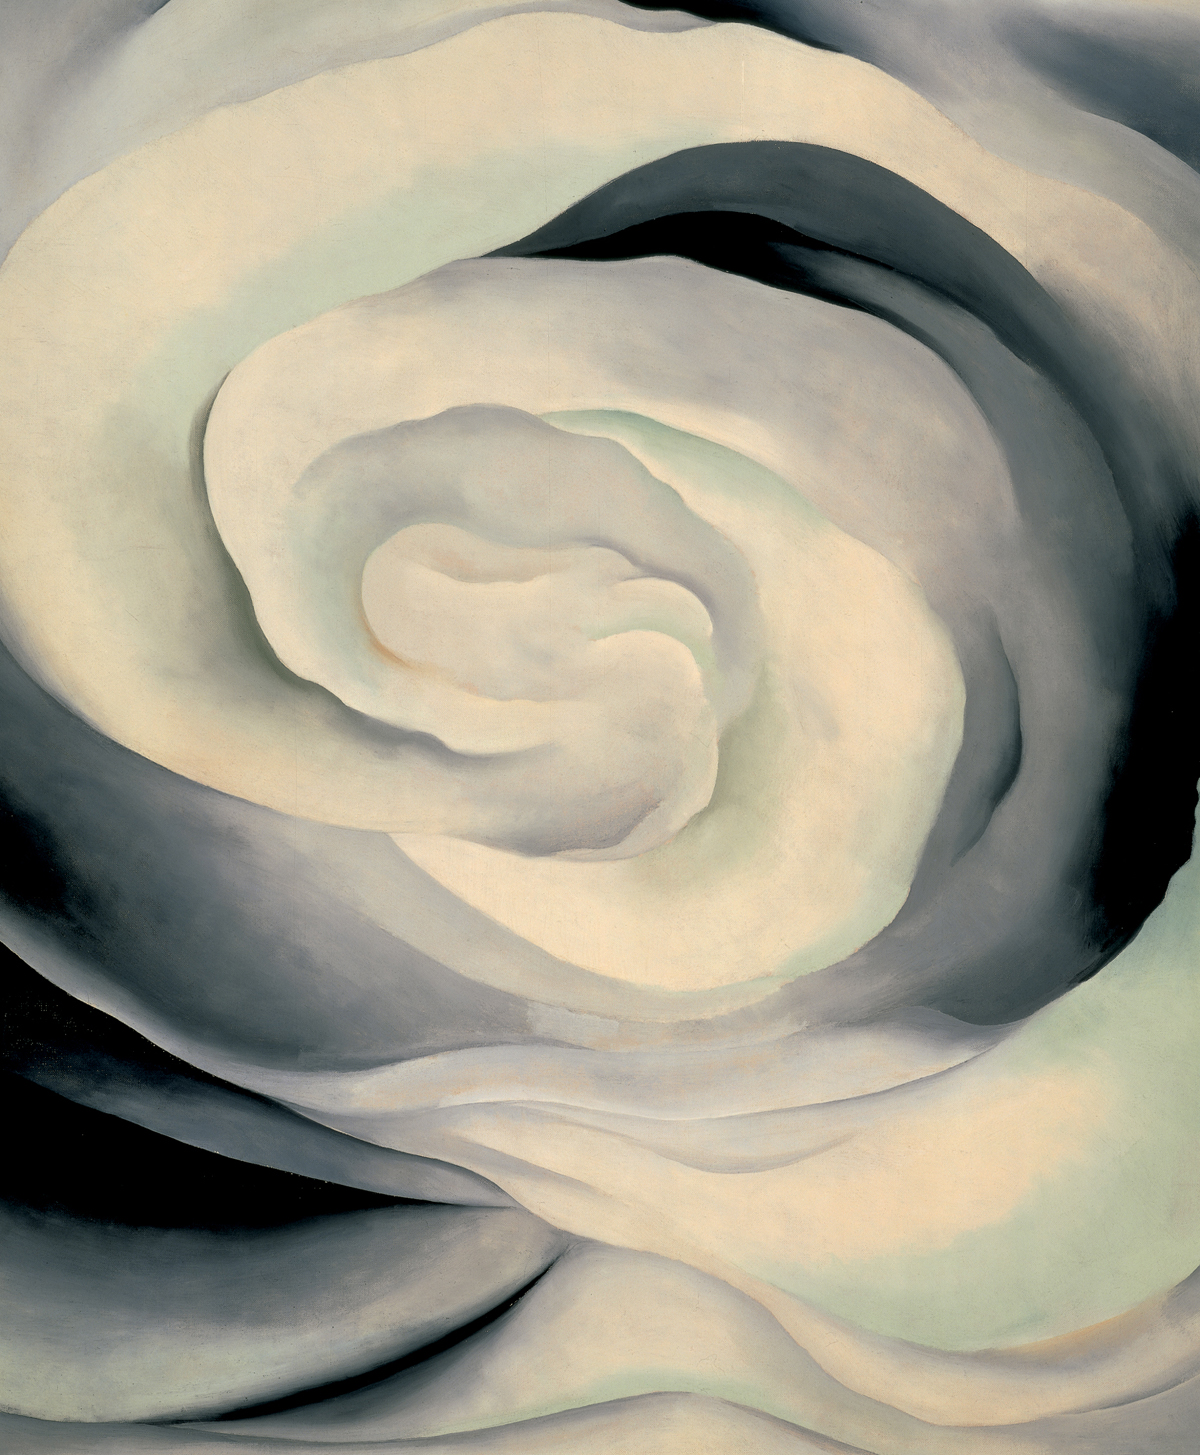 Georgia O'Keeffe, Abstraction White Rose, 1927, oil on canvas; 36 x 30 in.; Georgia O'Keeffe Museum, gift of The Burnett Foundation and The Georgia O'Keeffe Foundation; © 2009 Georgia O'Keeffe Museum/Artists Rights Society (ARS), New York